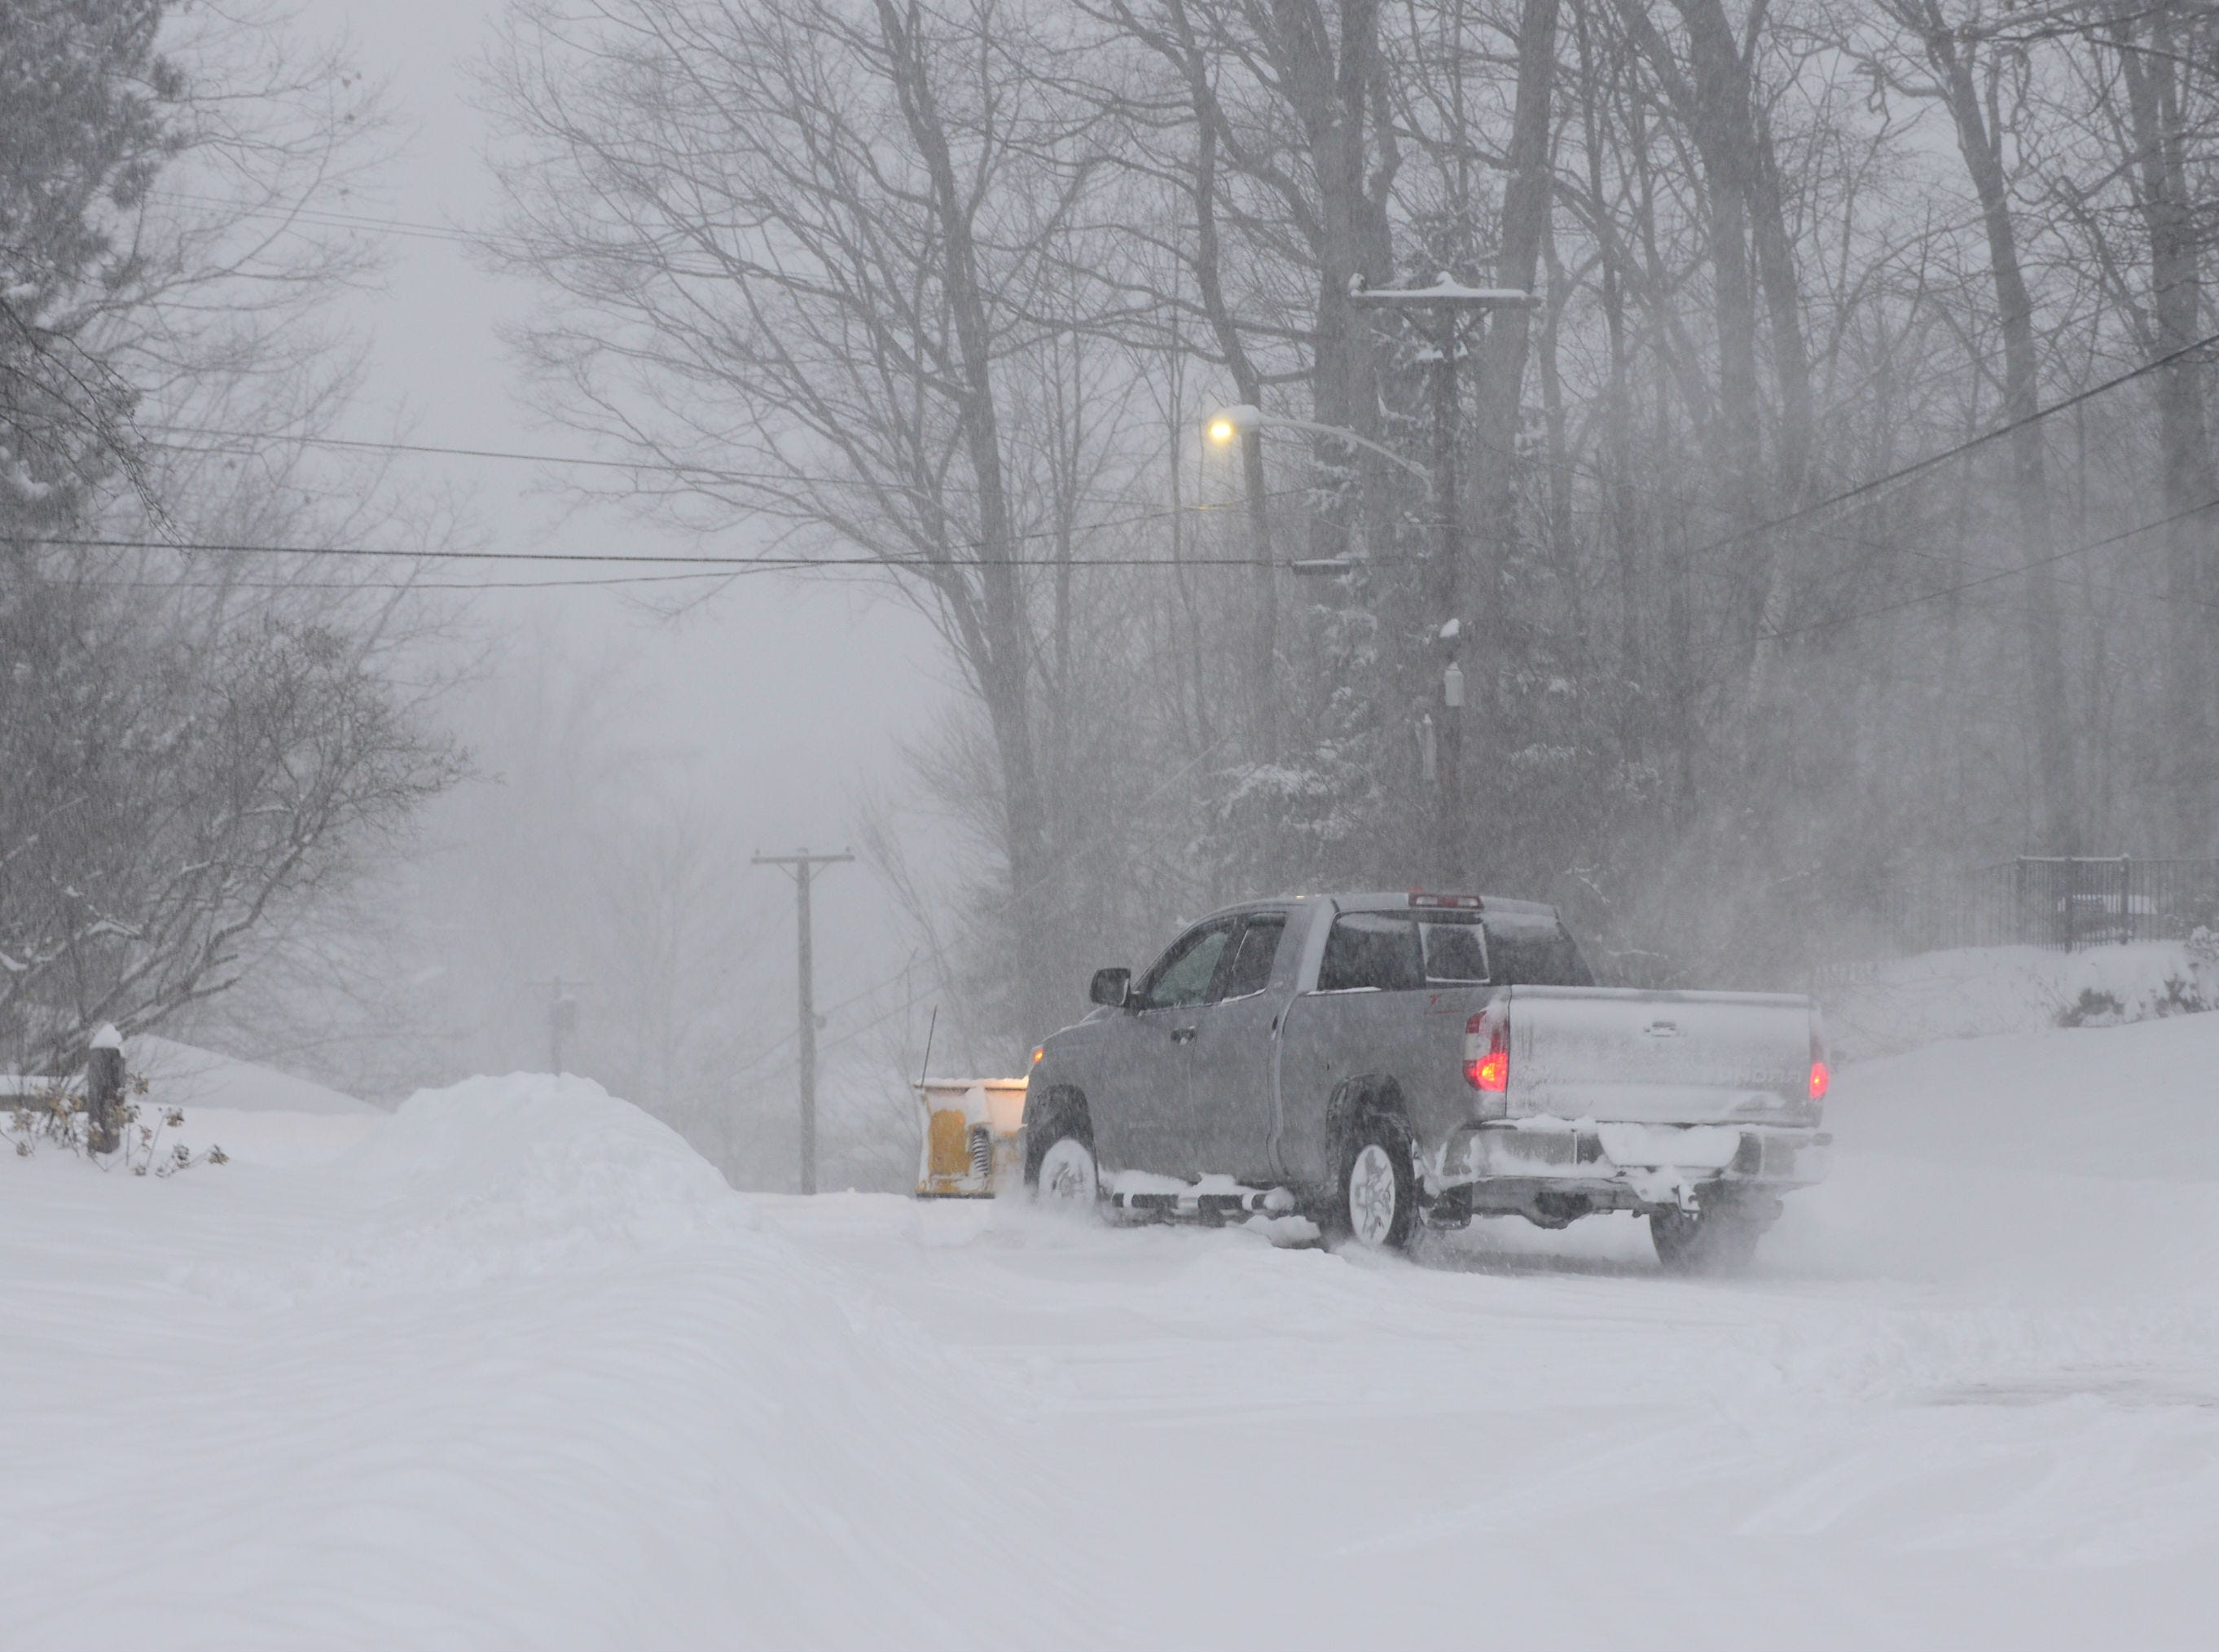 A snowplow heads down Brewer Parkway in South Burlington after clearing a driveway Sunday morning, Jan. 20, 2019. The winter storm, dubbed Harper by the Weather Channel, swept into Vermont Saturday night and was expected drop as much as 24 inches of snow by Sunday evening.